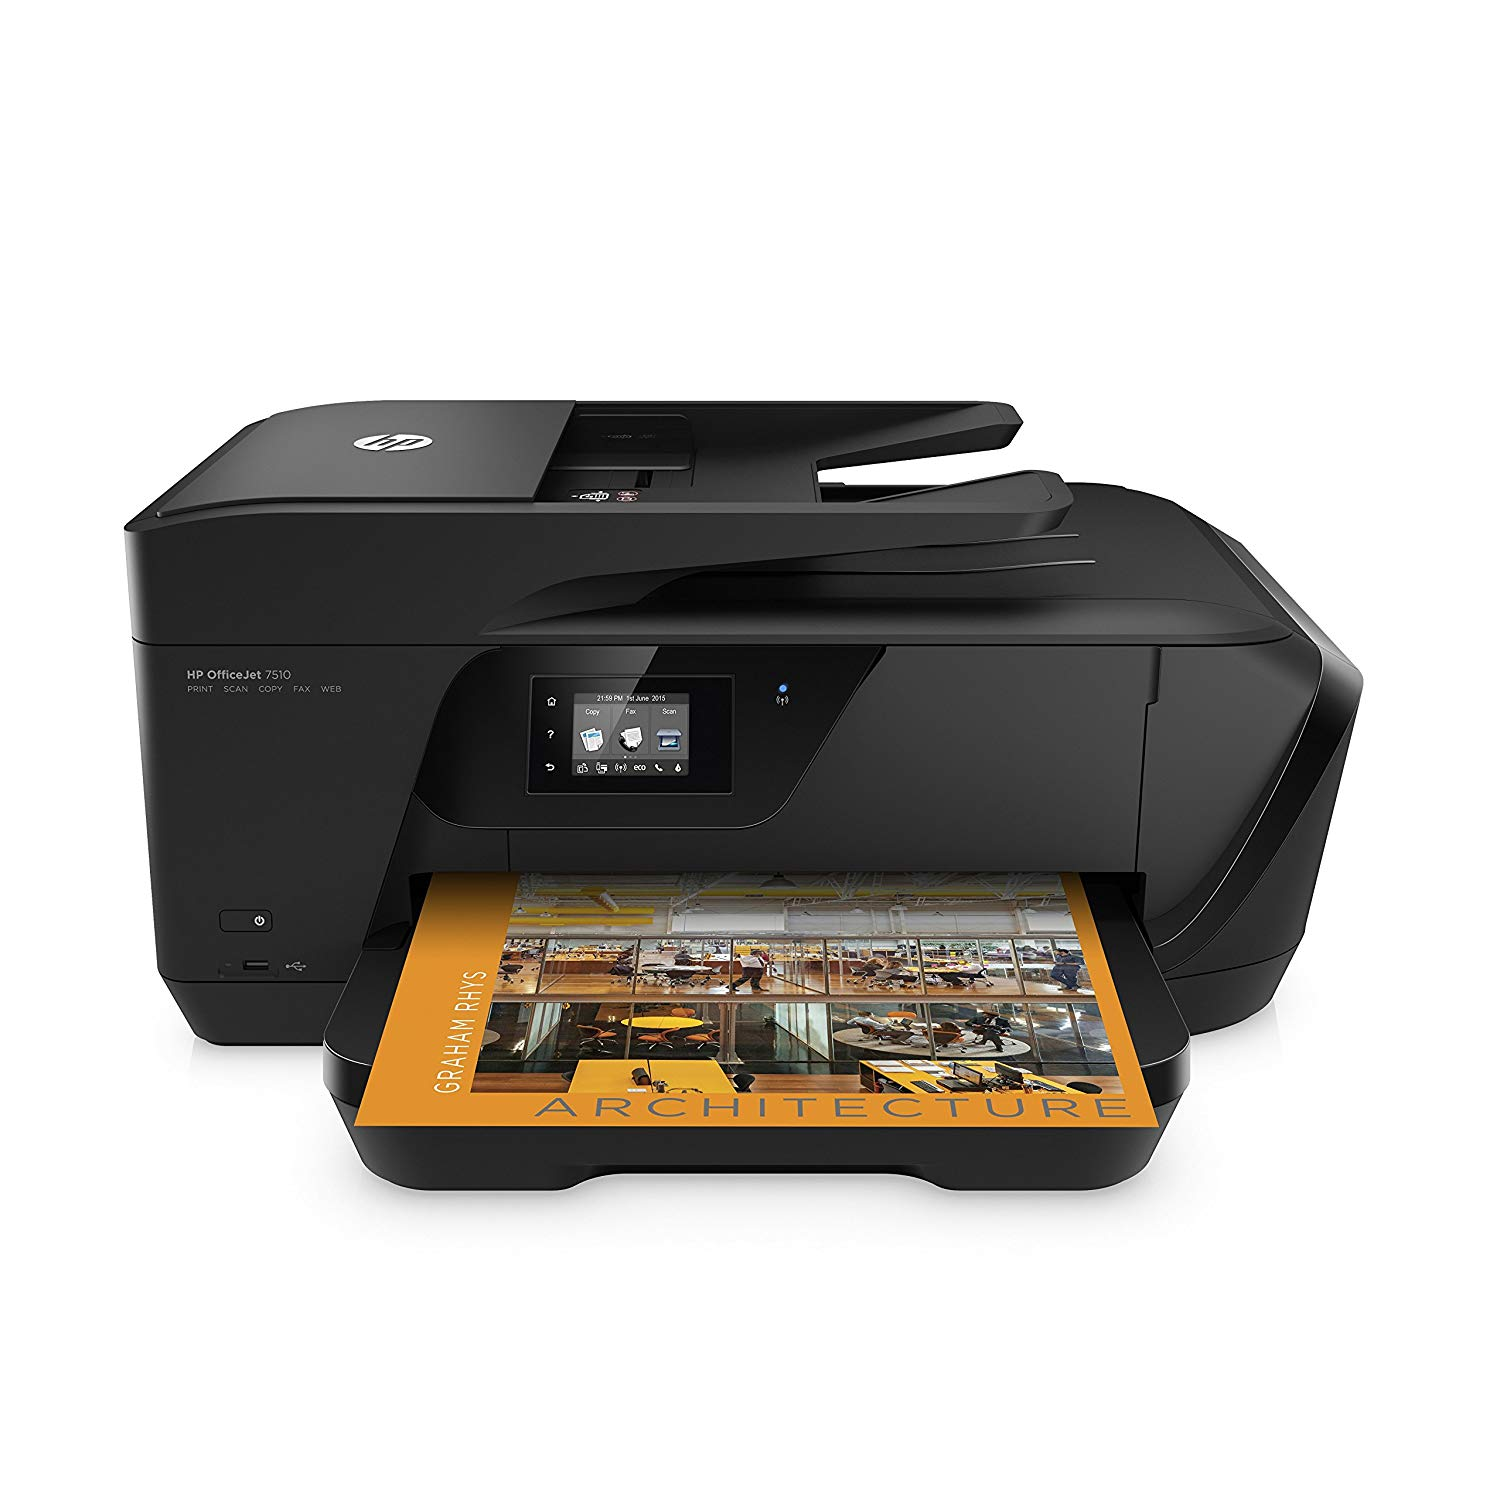 HP OfficeJet 7510 Driver Downloads | Download Drivers Printer Free